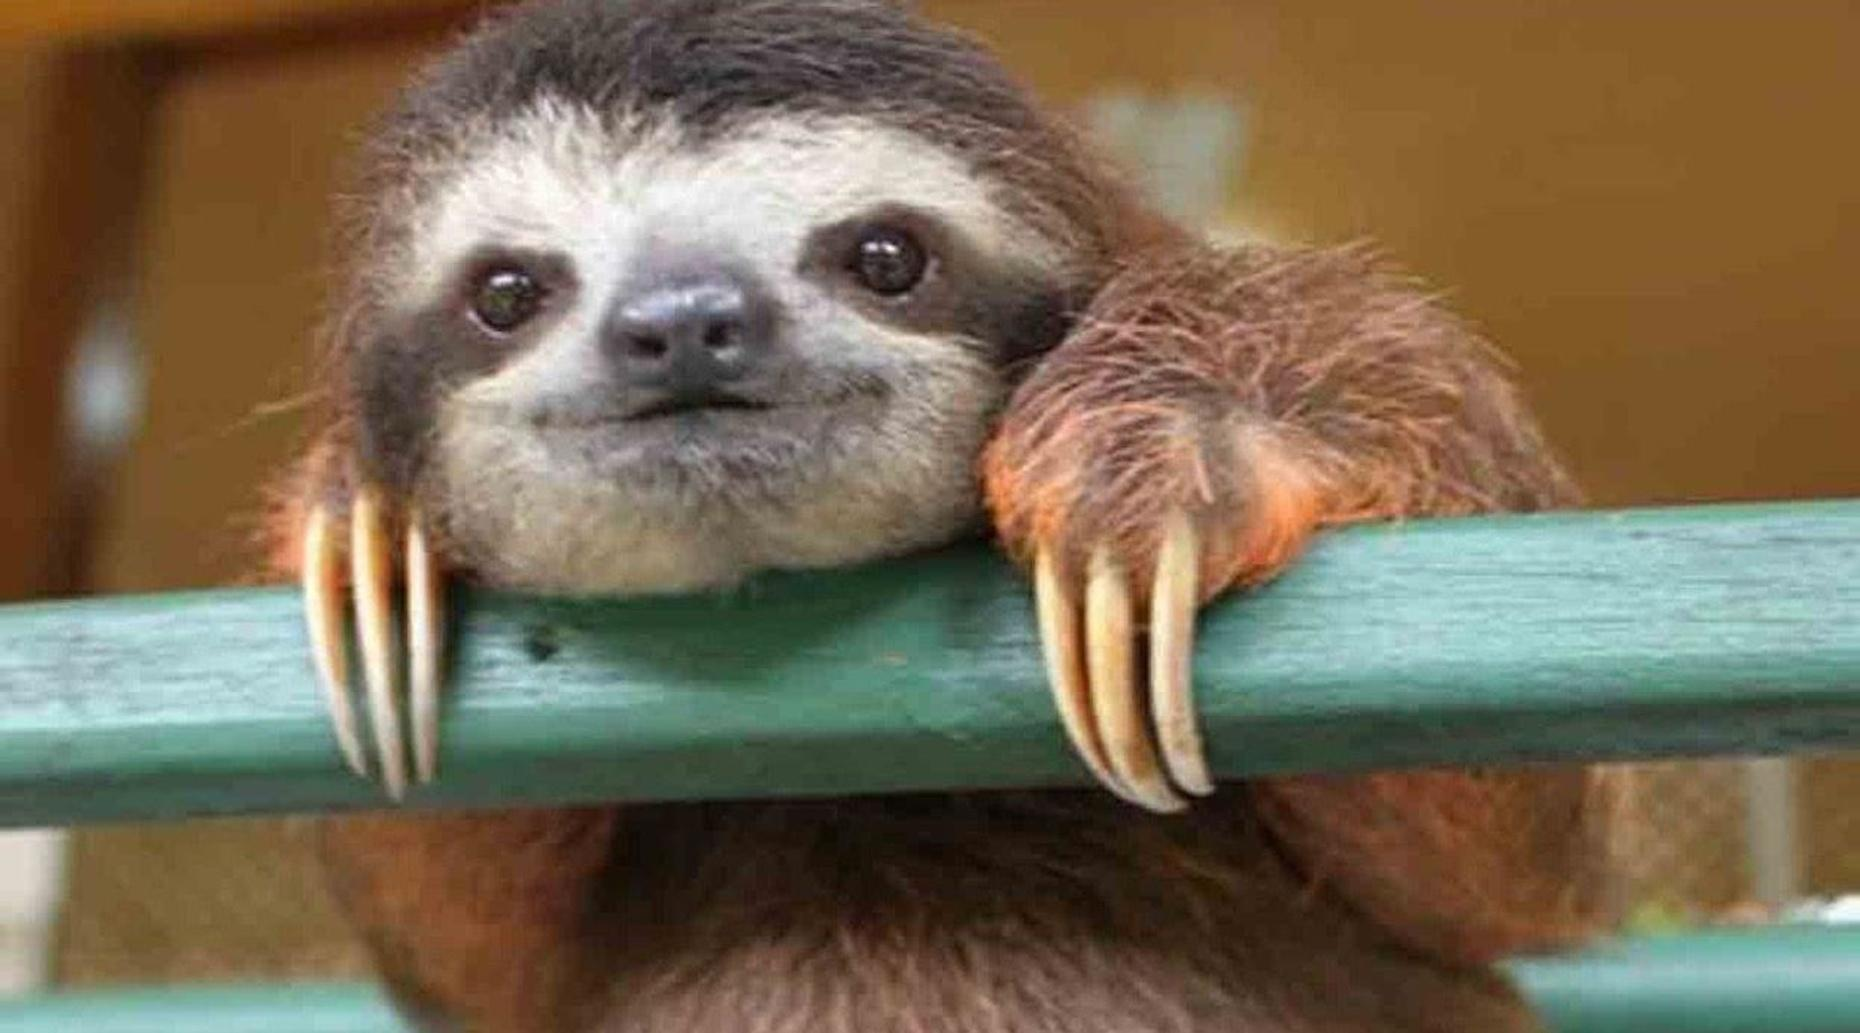 Pet & Feed Sloths at a Zoo in Lambertville